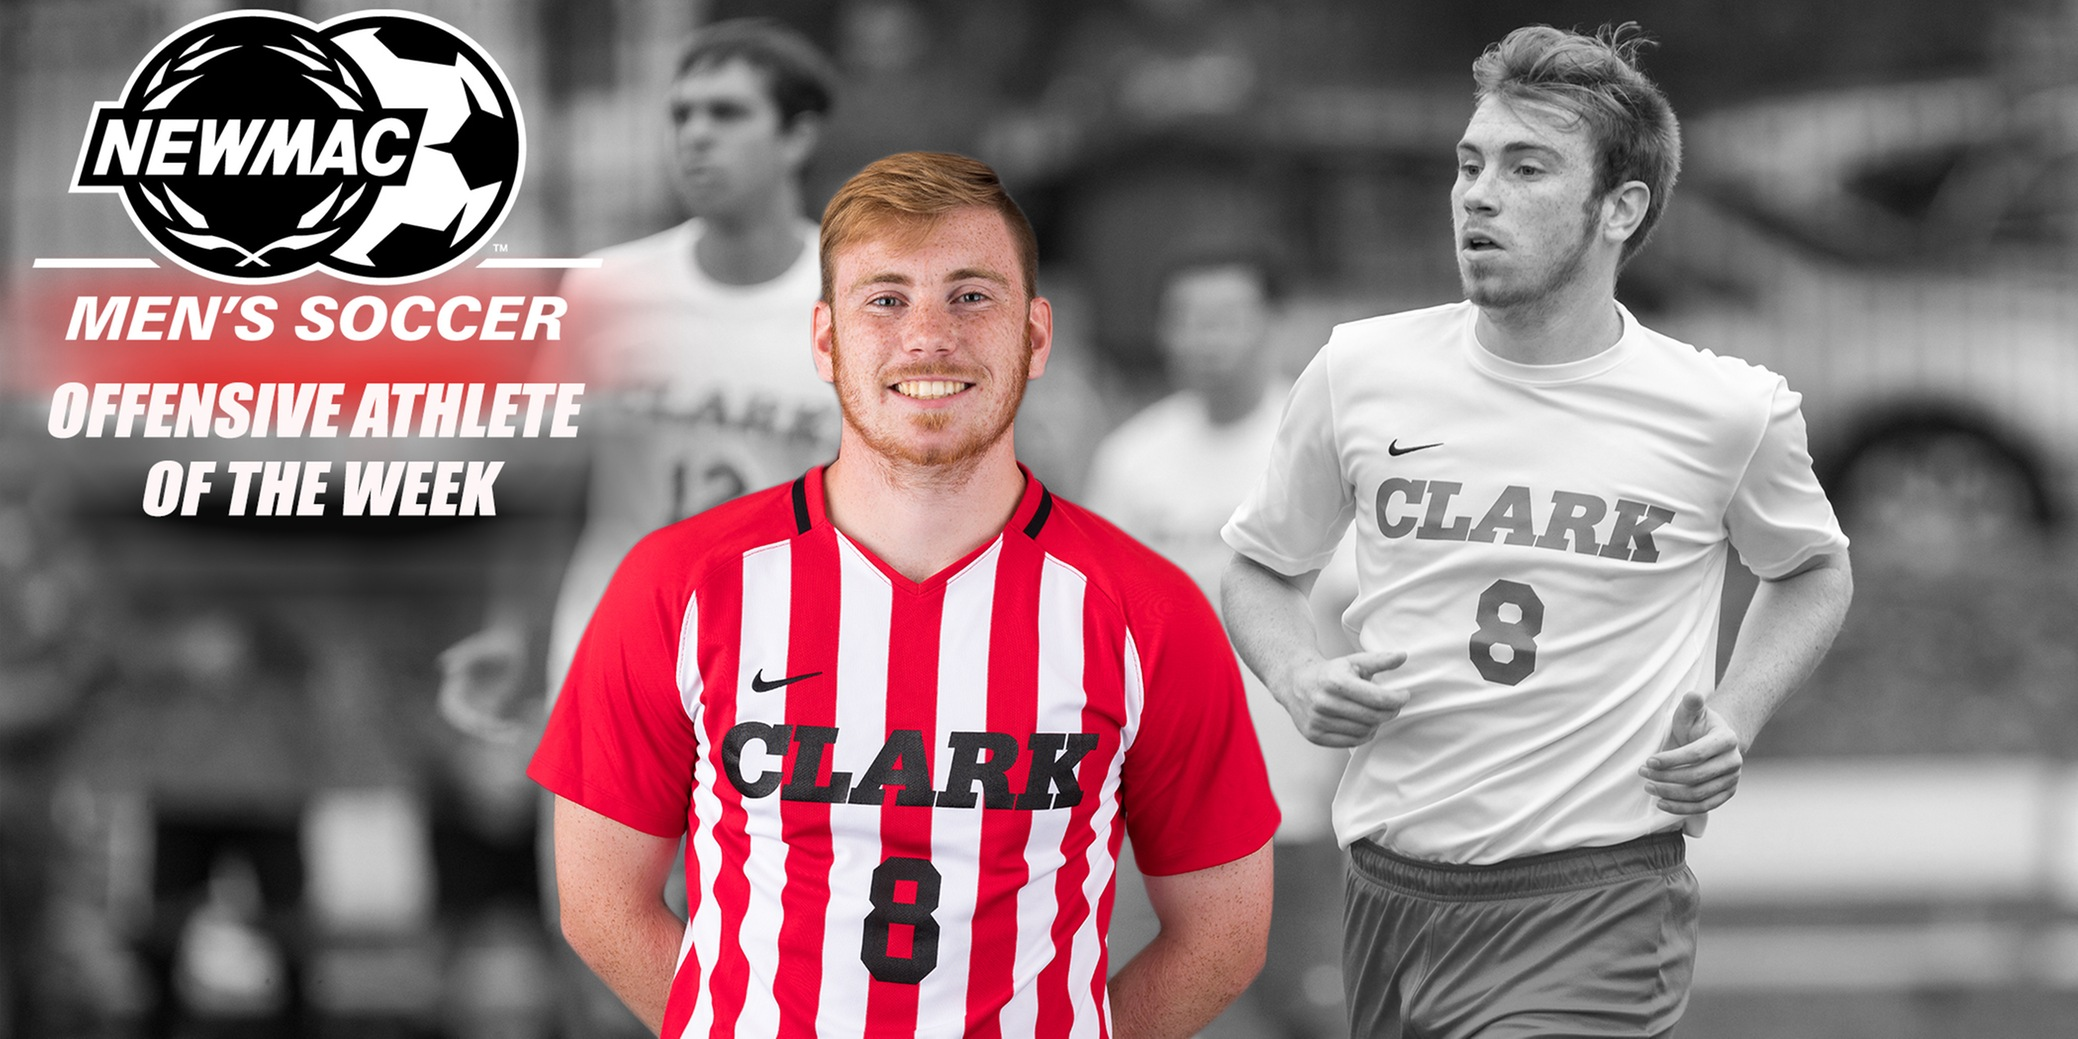 Lane Named NEWMAC Men's Soccer Offensive Athlete of the Week